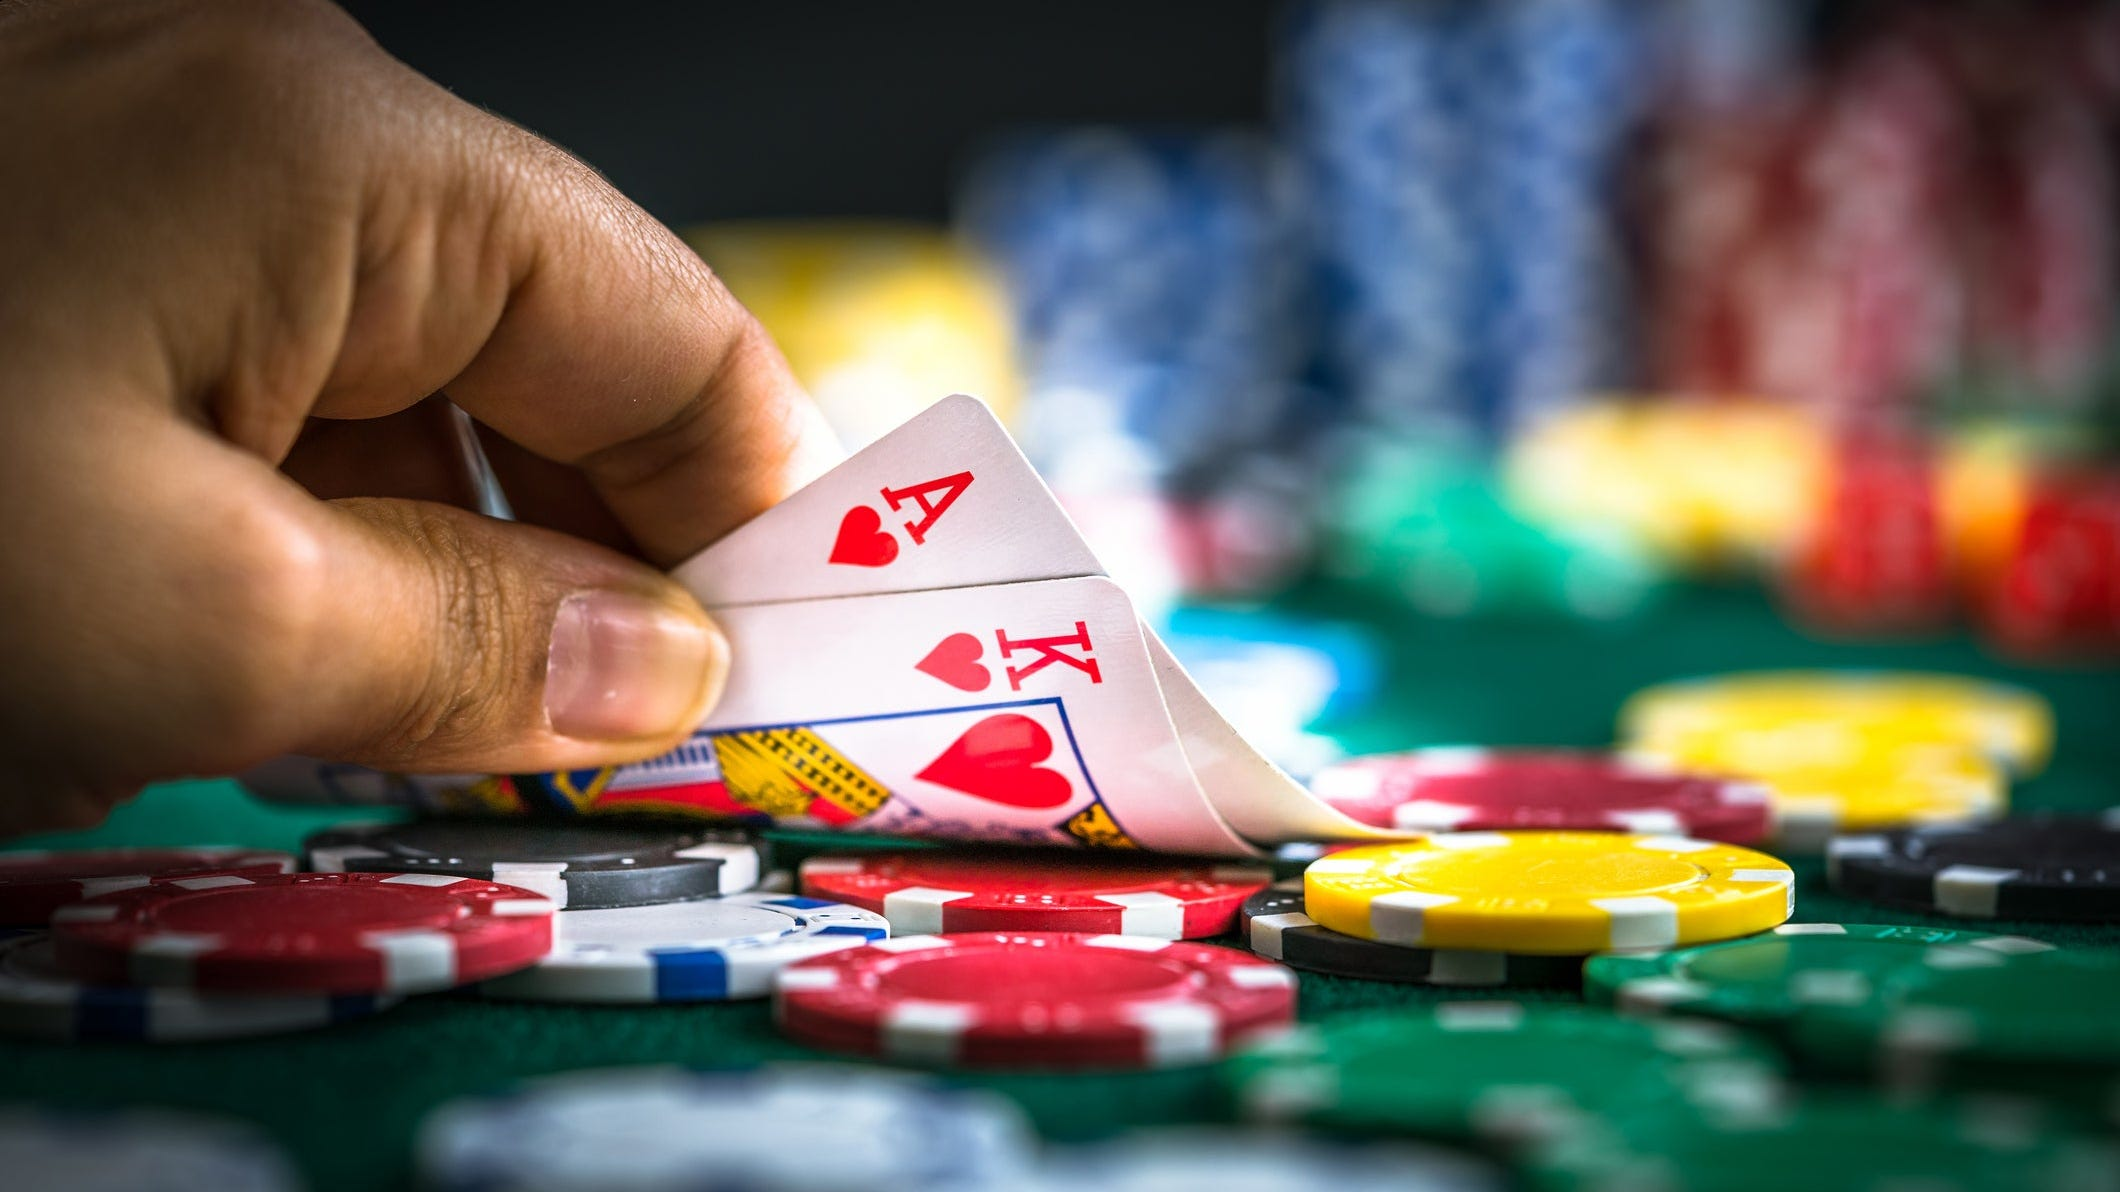 Gambling in Florida: What's legal right now, what's not